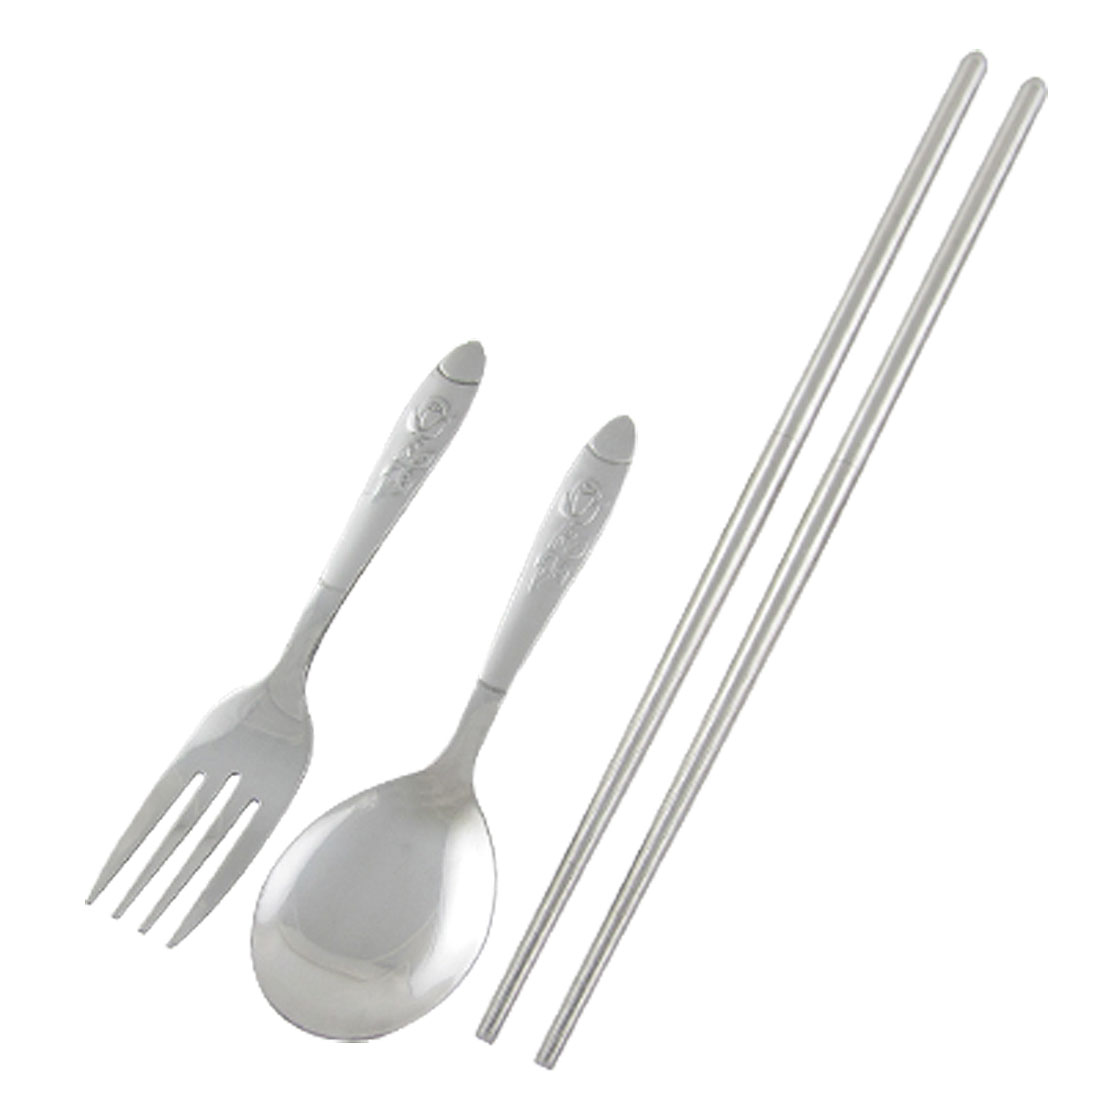 Outdoor Portable Stainless Steel Chopsticks Spoon Fork Tableware Set